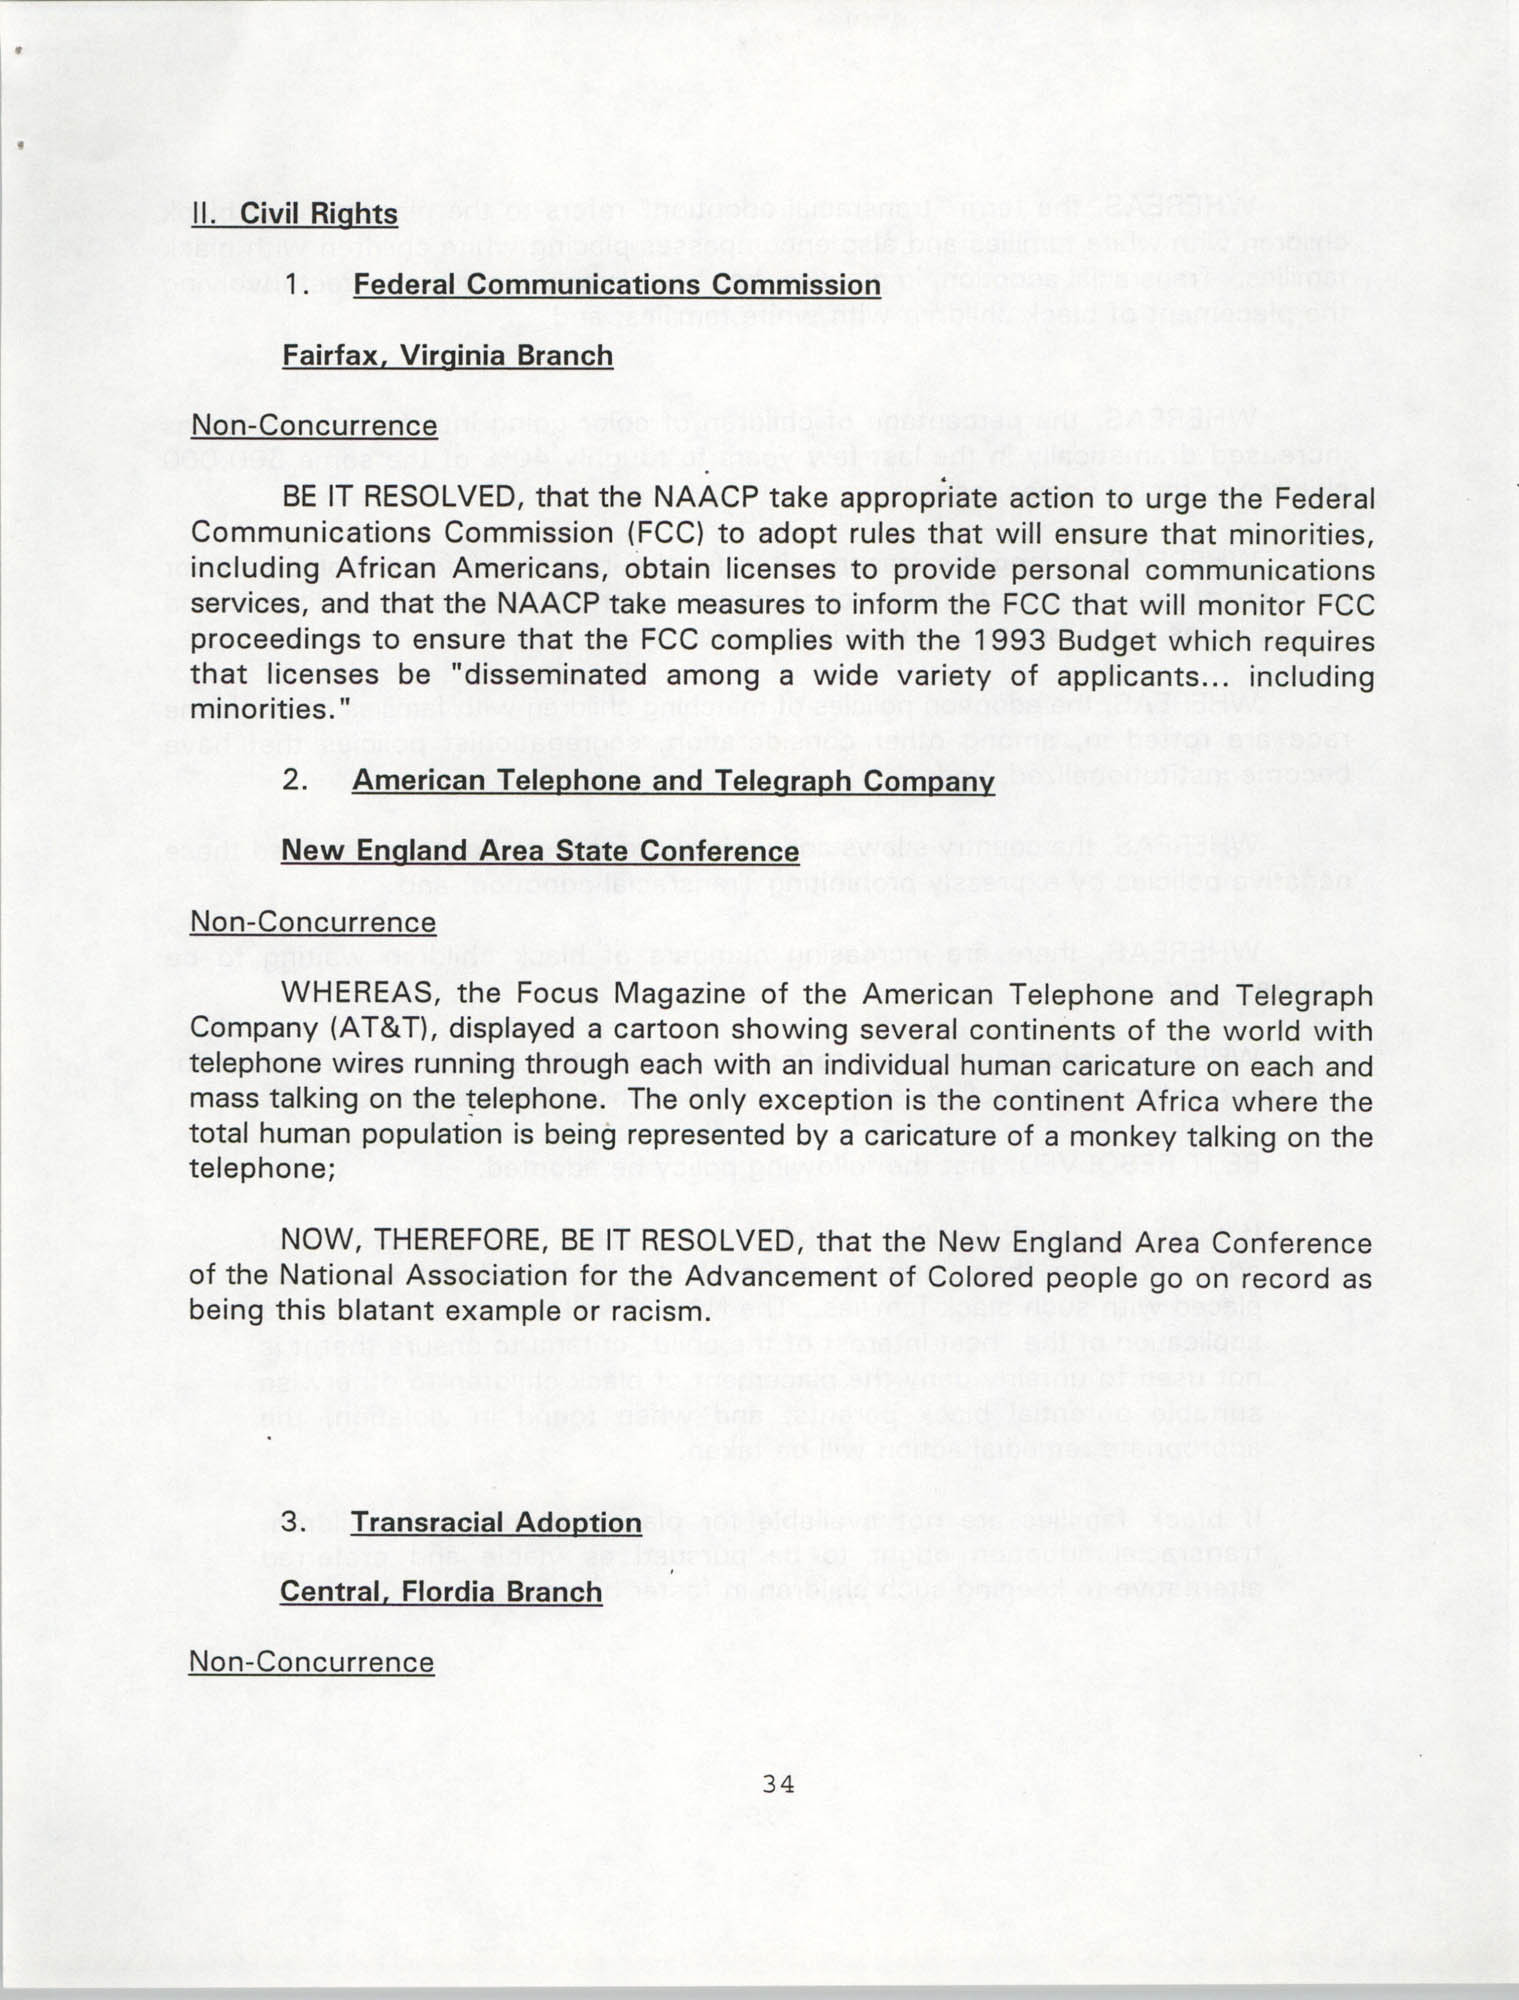 Resolutions Submitted Under Article X, Section 2 of the Constitution of the NAACP, 1994, Page 34